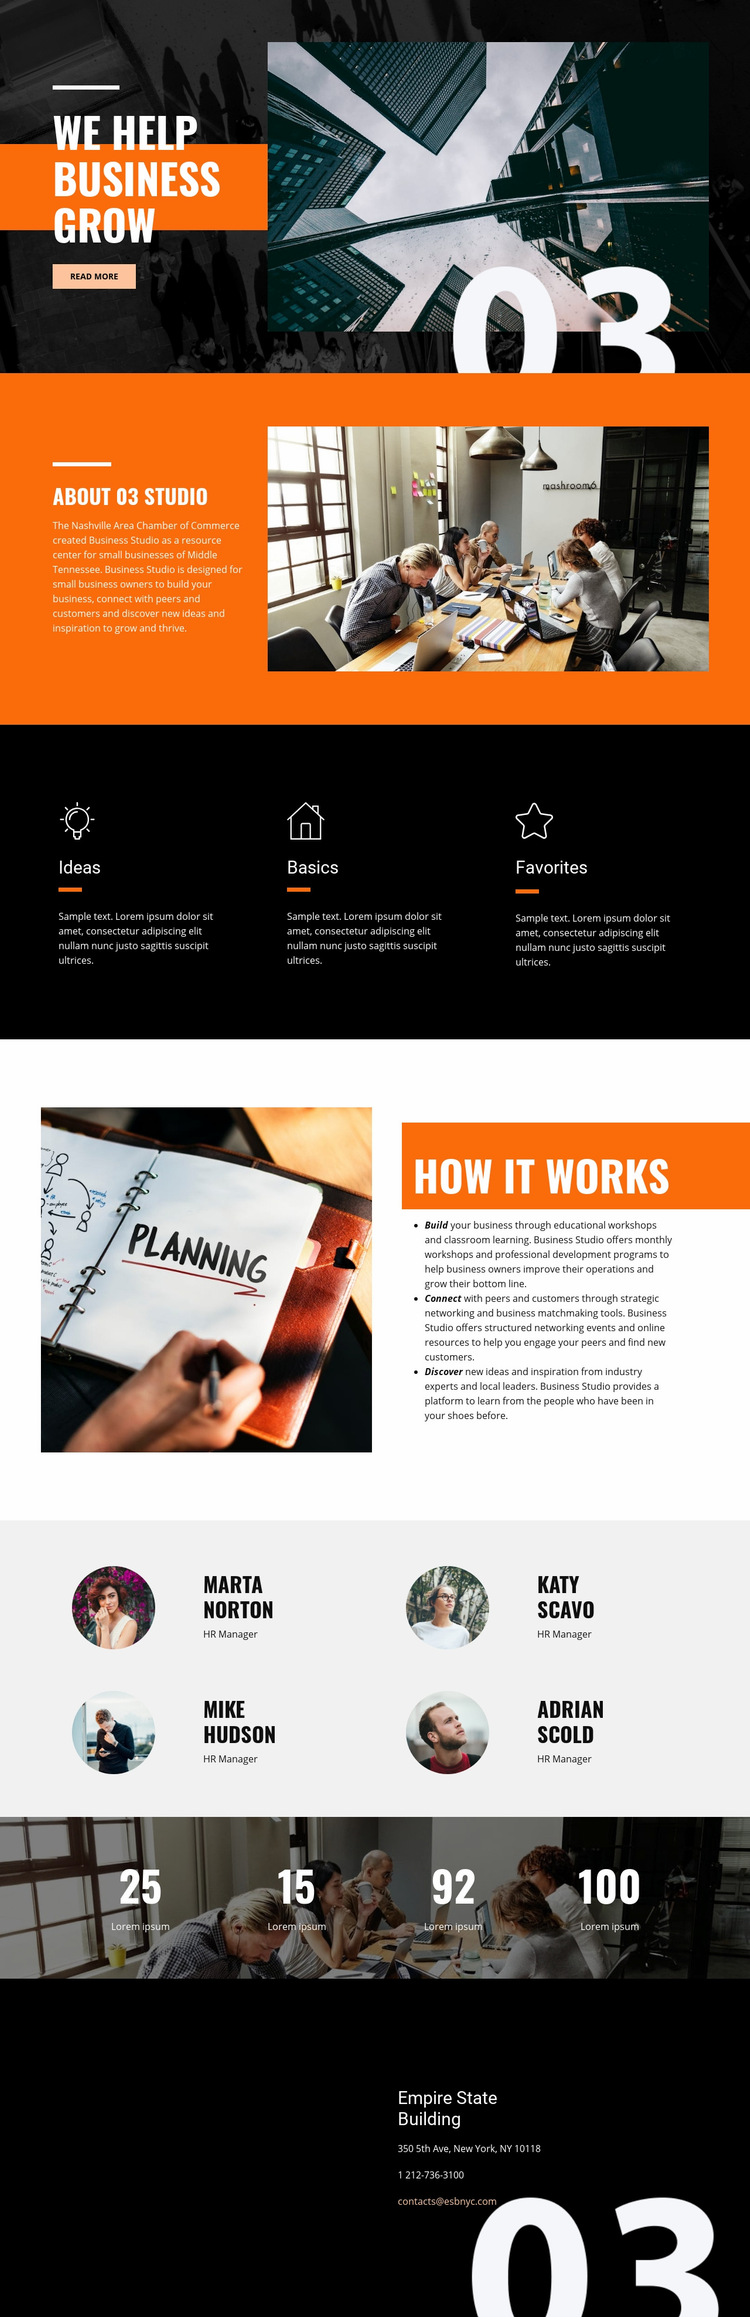 Business Grow Web Page Design